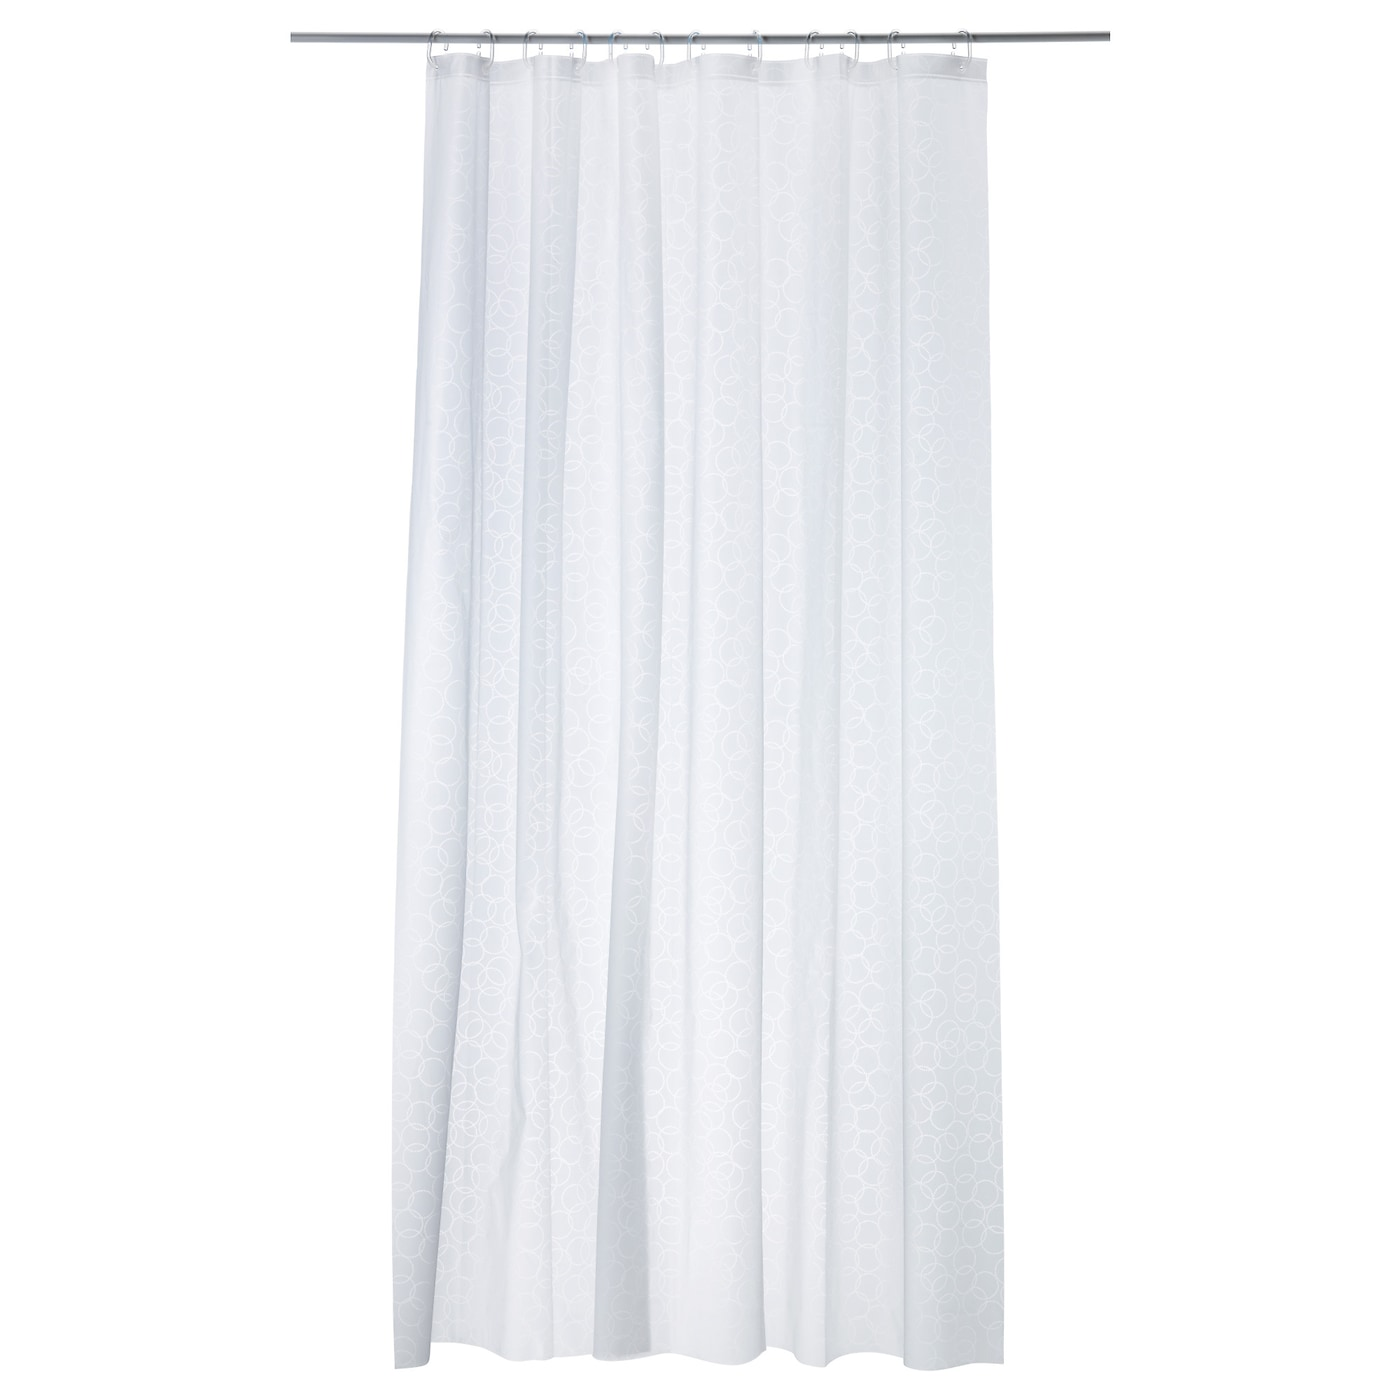 INNAREN Shower curtain White 180x180 cm - IKEA